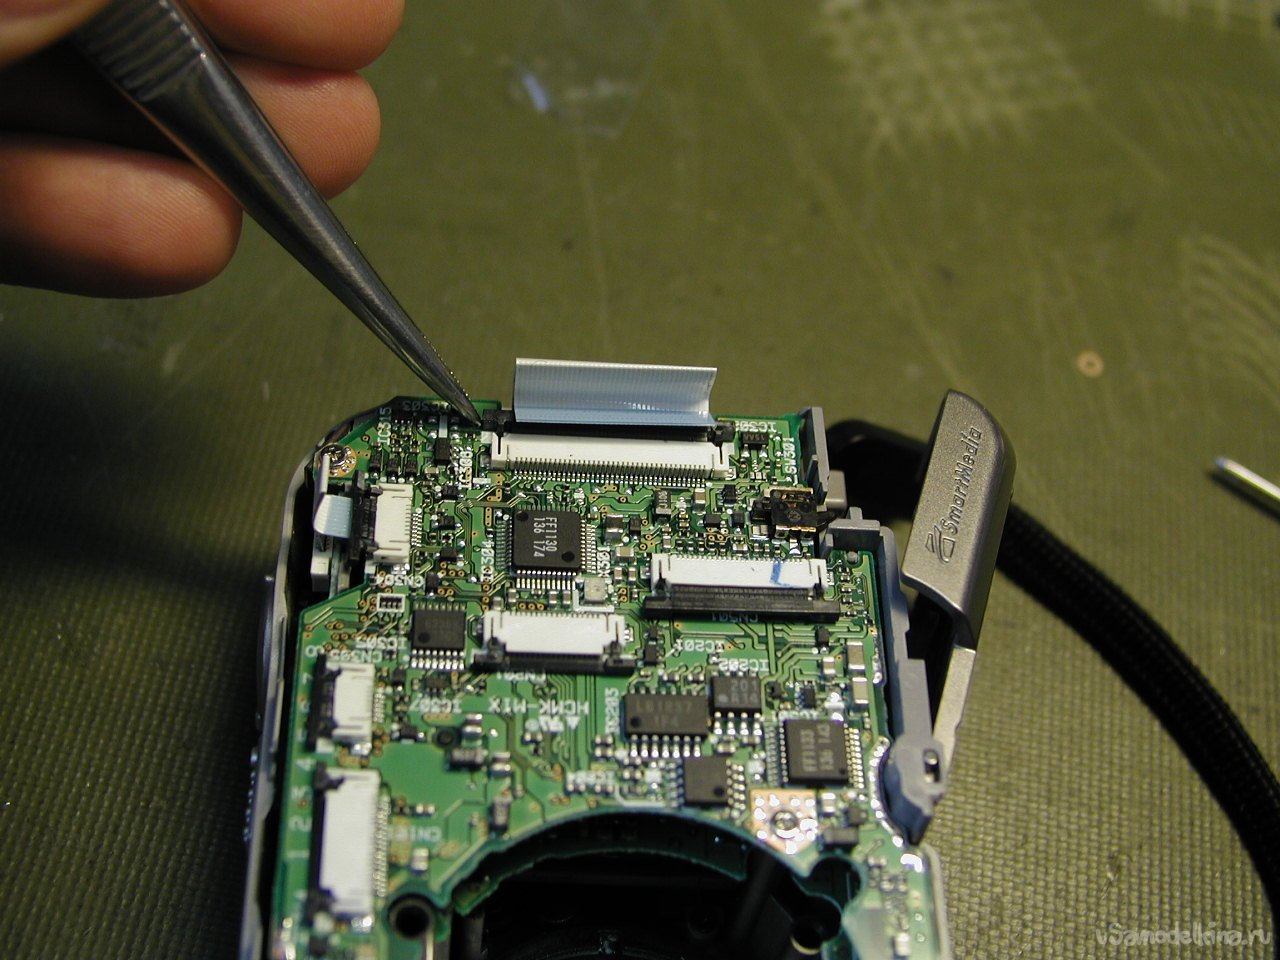 Incomplete disassembly of the Fujifilm FinePix 2600